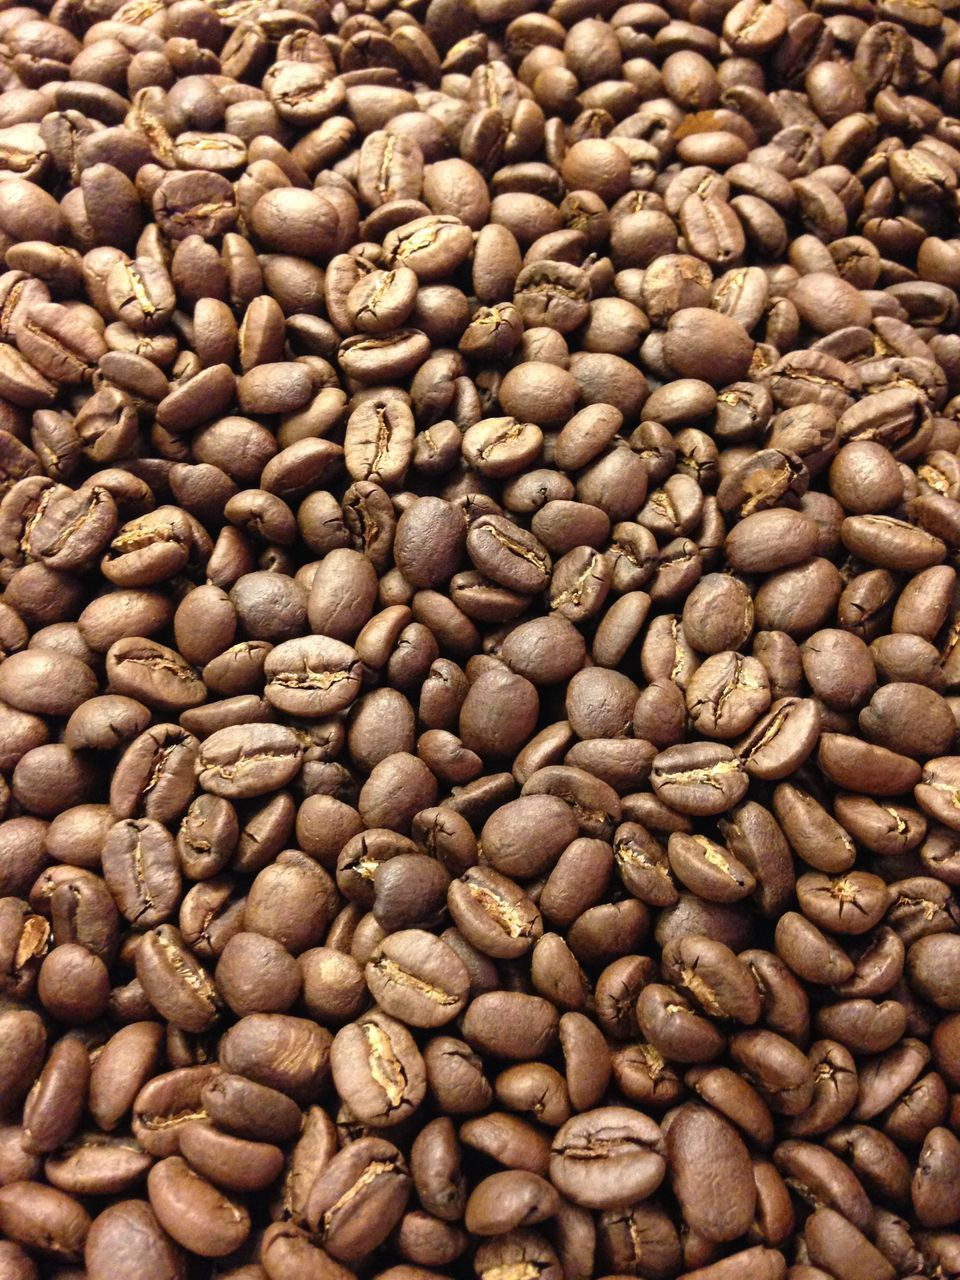 coffee - drink, roasted coffee bean, food and drink, brown, raw coffee bean, roasted, coffee bean, coffee cup, freshness, abundance, full frame, large group of objects, food, no people, scented, backgrounds, close-up, indoors, bean, cappuccino, nature, mocha, day